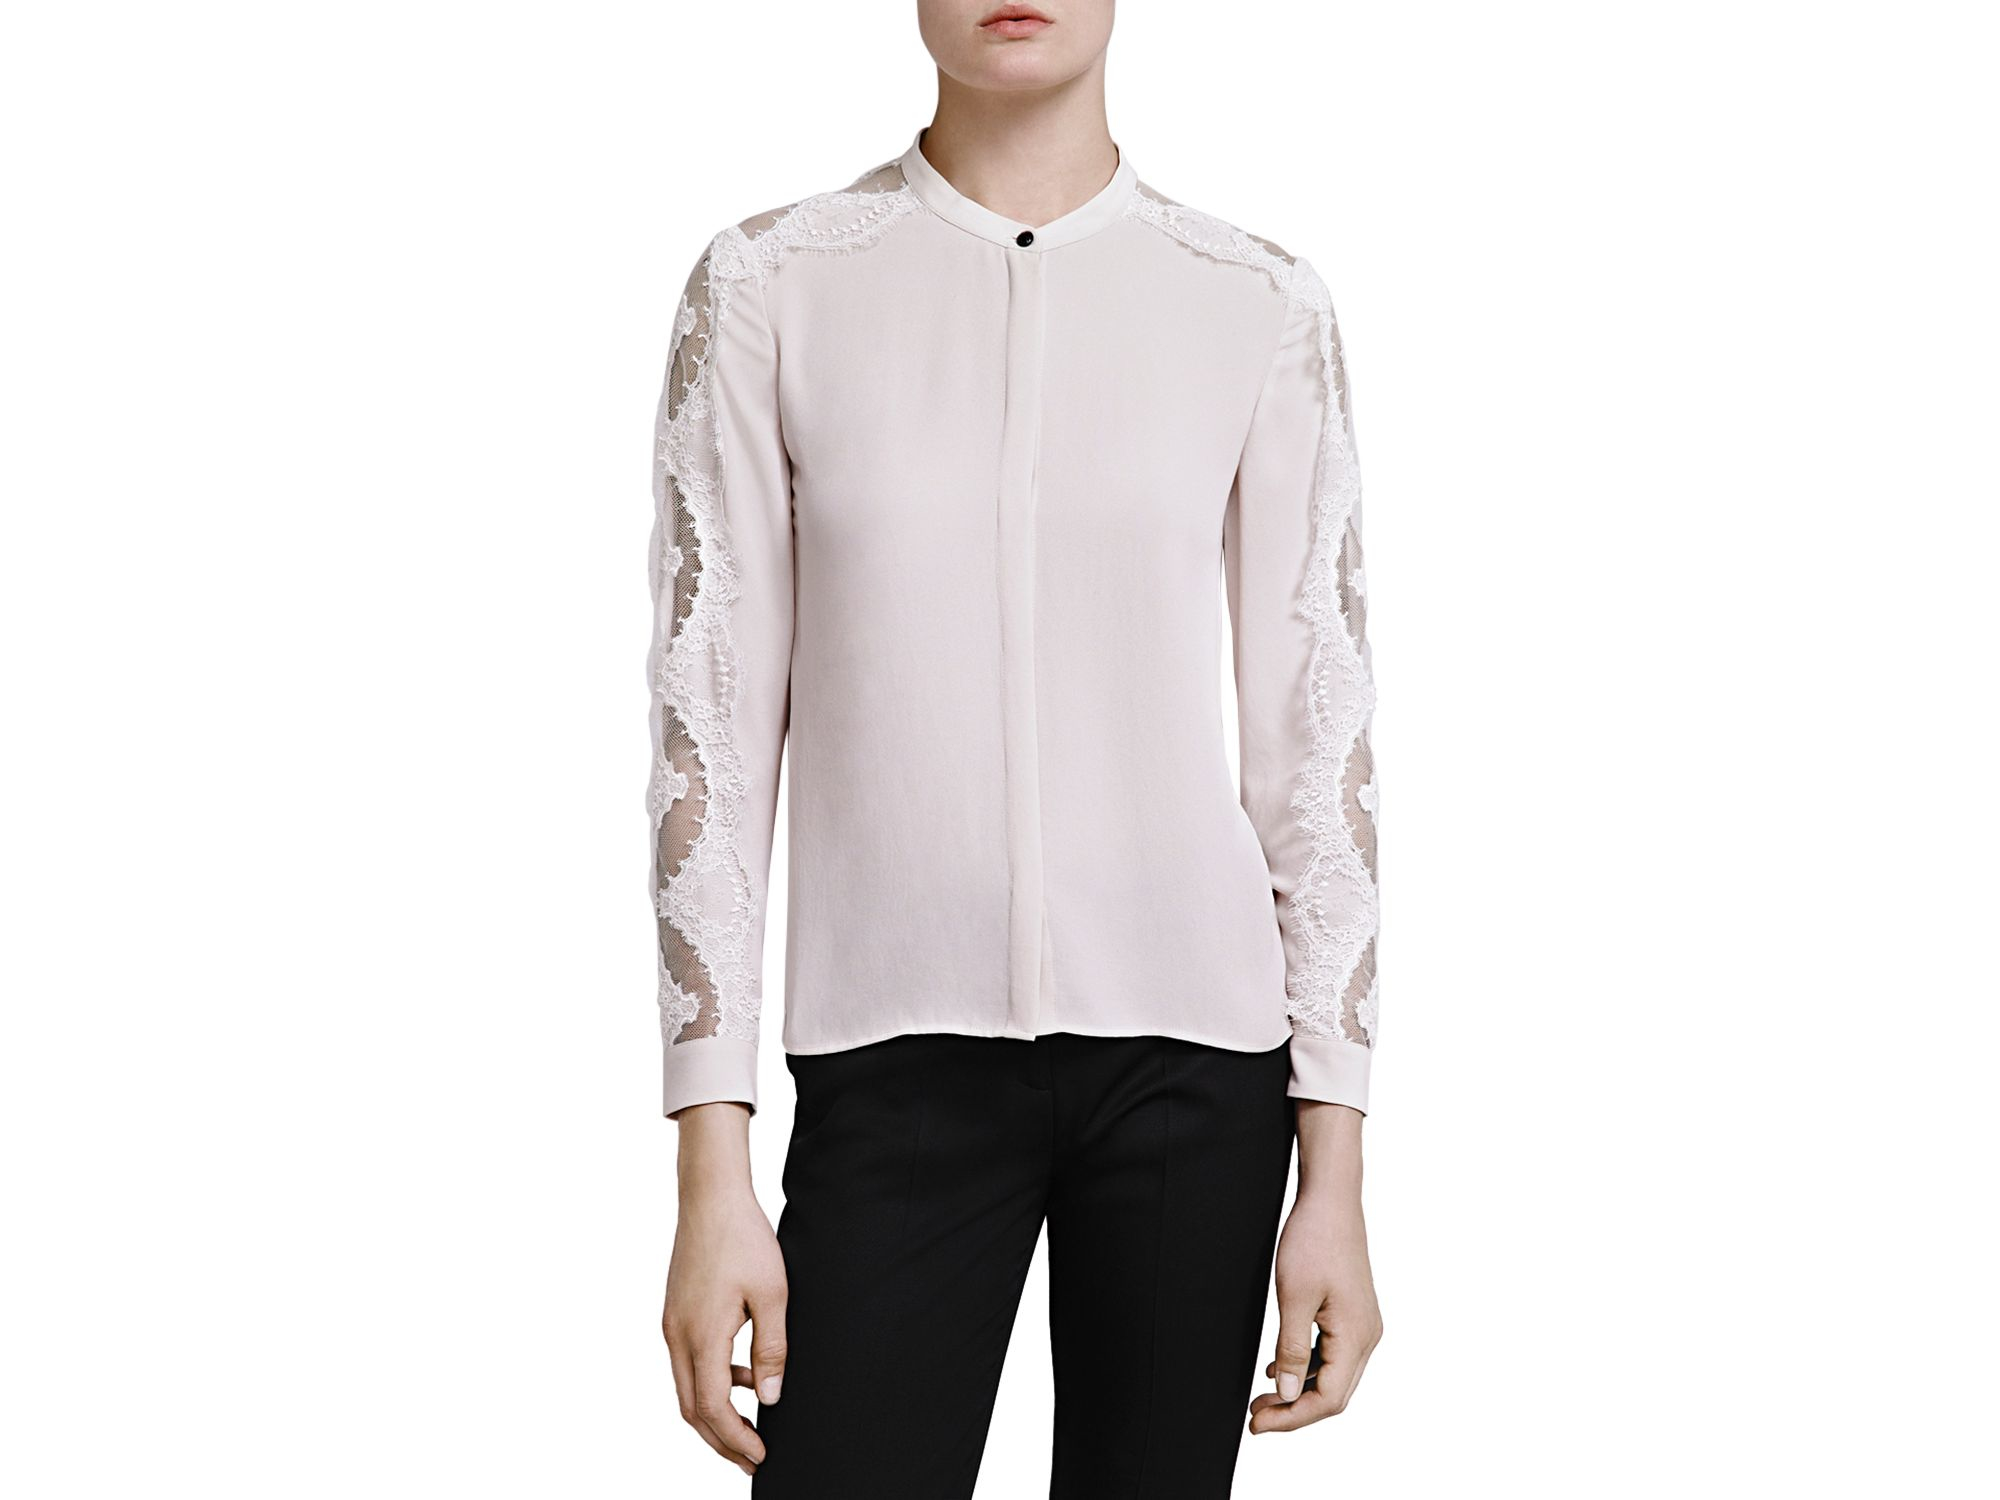 506536ca1b Lyst - The Kooples Crepe & Lace Shirt in Natural